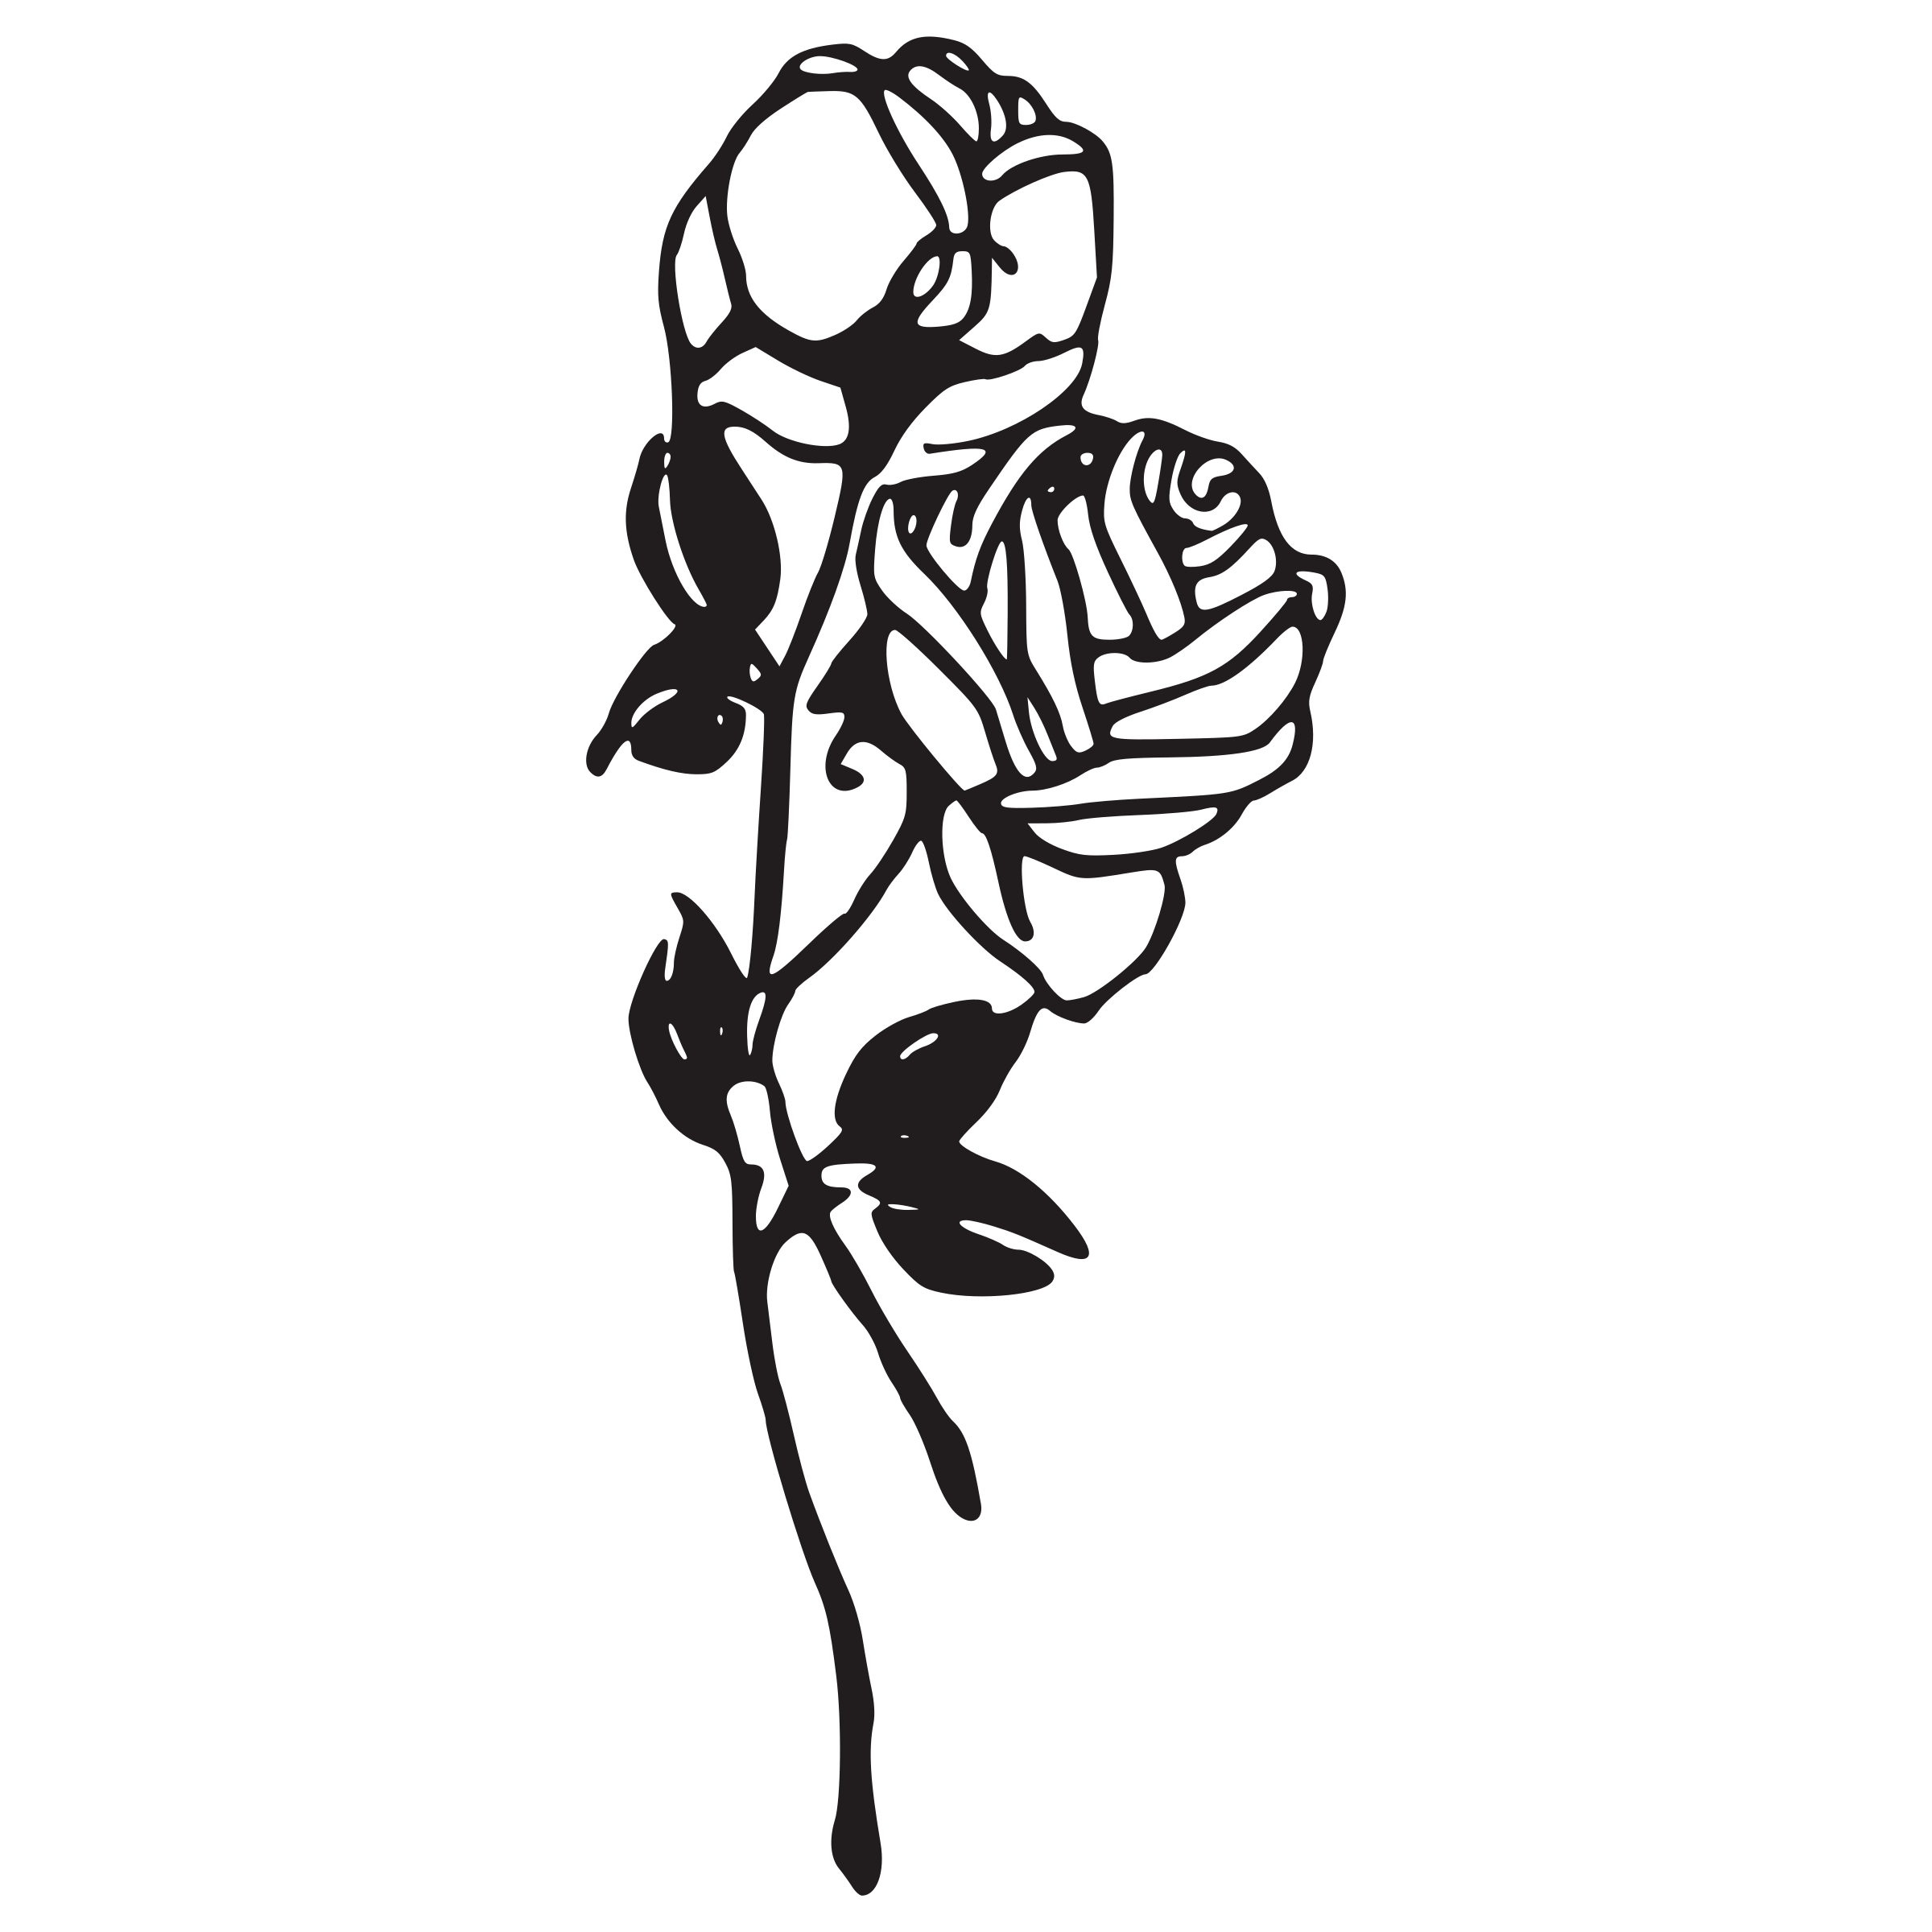 Clipart rose branch. Two roses big image